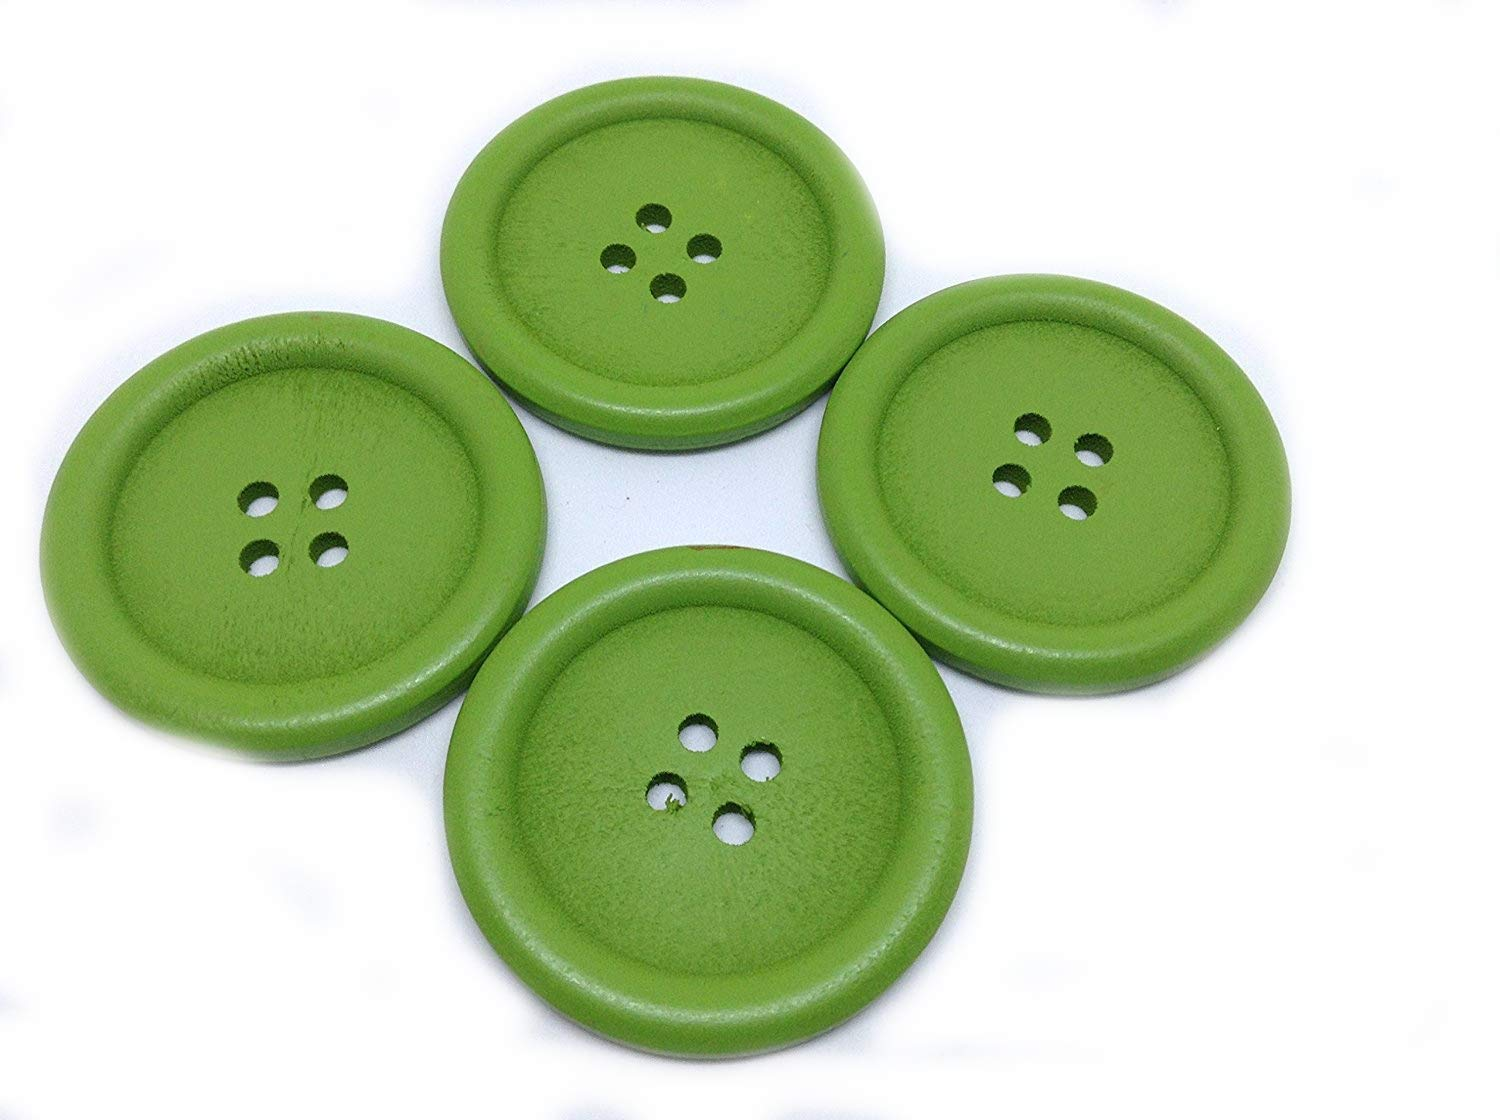 Sewing Knitting 5 Wooden LARGE Green Rimmed Buttons 40mm Handbags Crafts